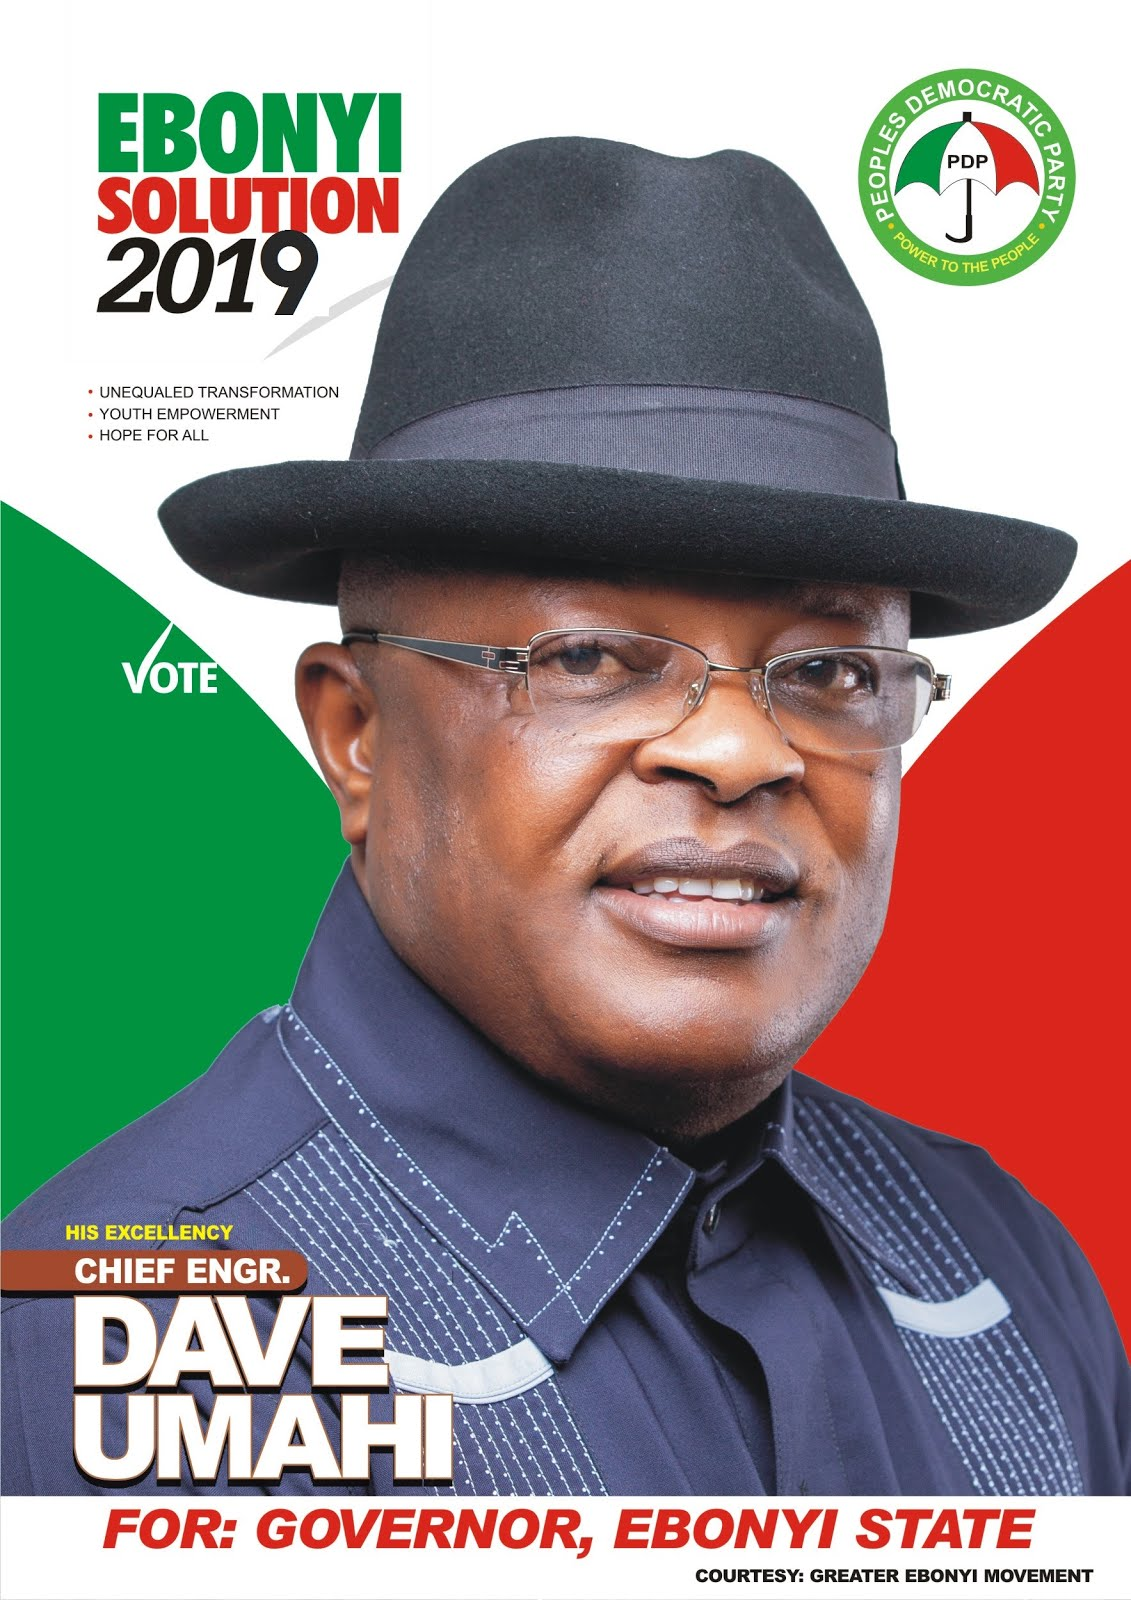 Let make Ebonyi Greater!